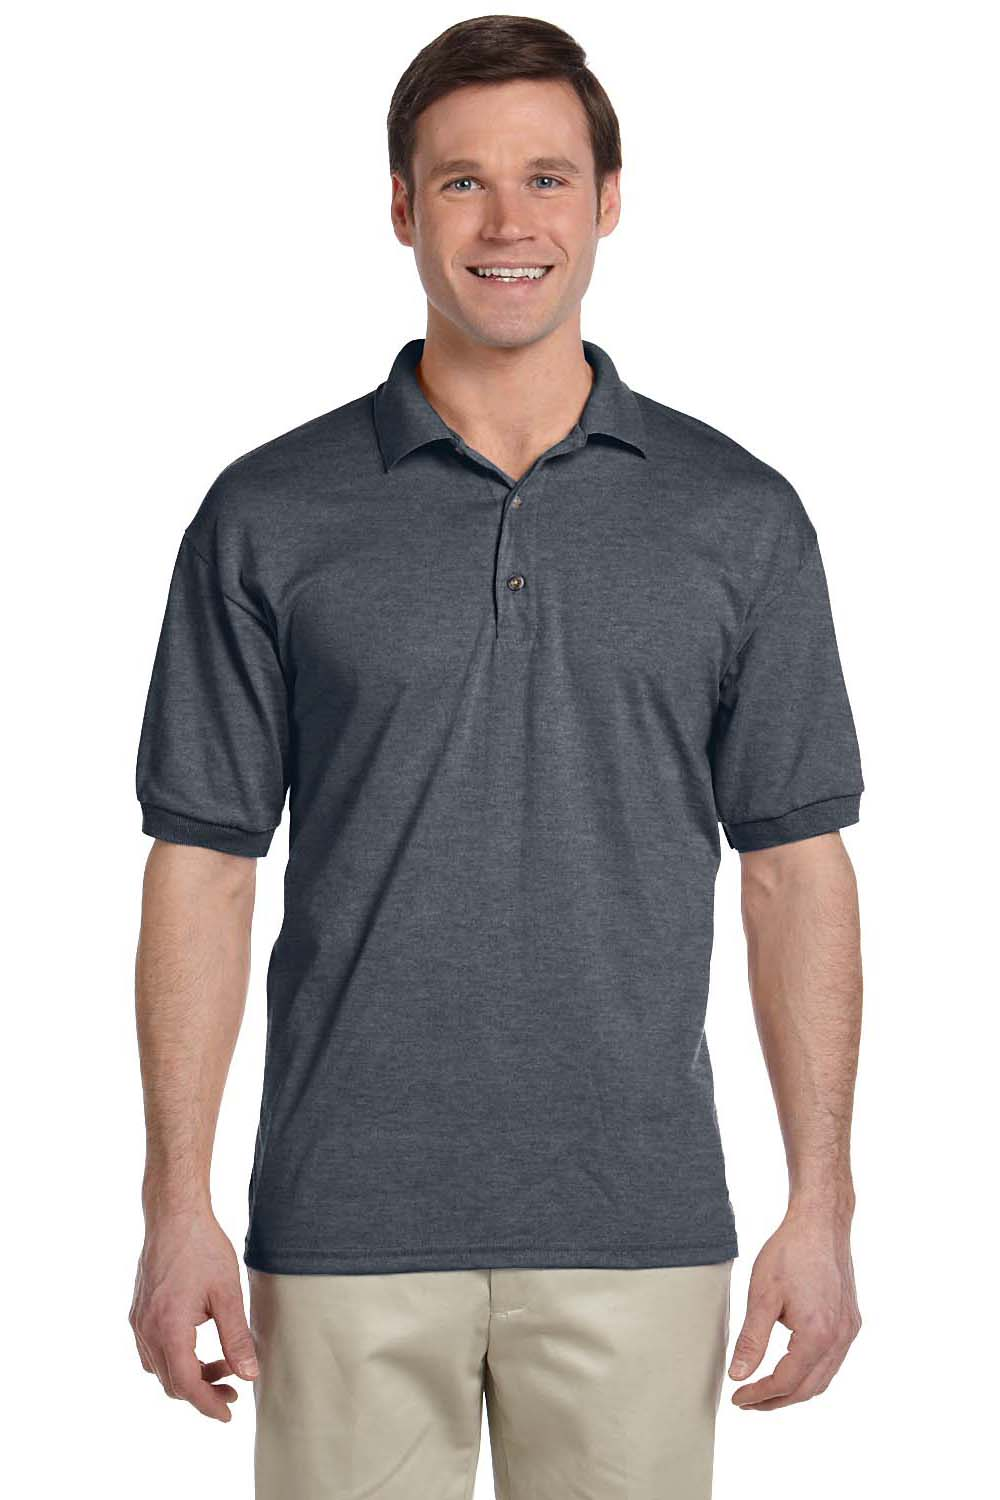 Gildan G880 Mens DryBlend Moisture Wicking Short Sleeve Polo Shirt Heather Dark Grey Front